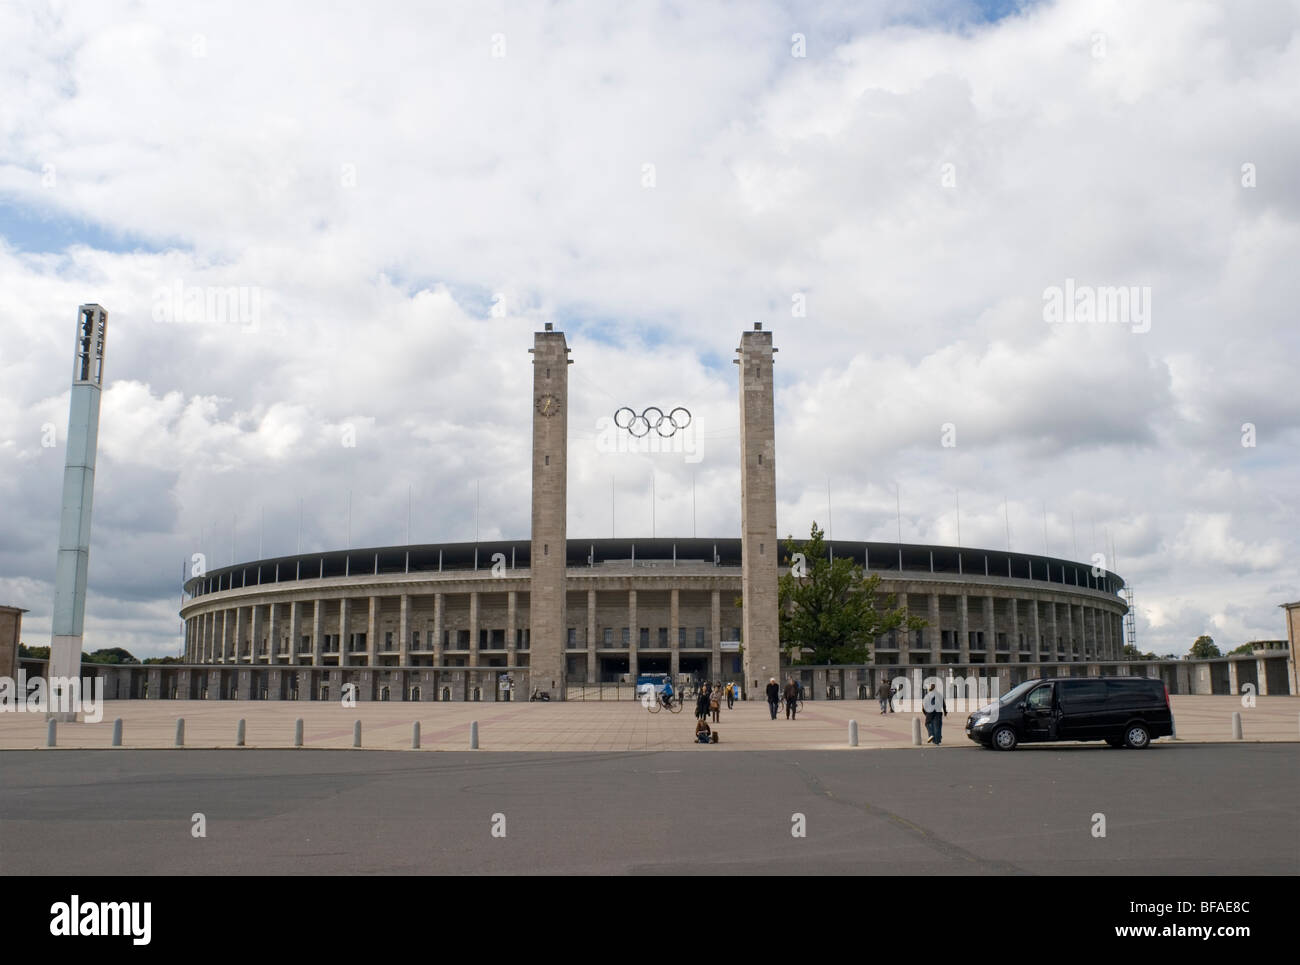 exteriors of Olympiastadion - Berlin - Germany - Stock Image